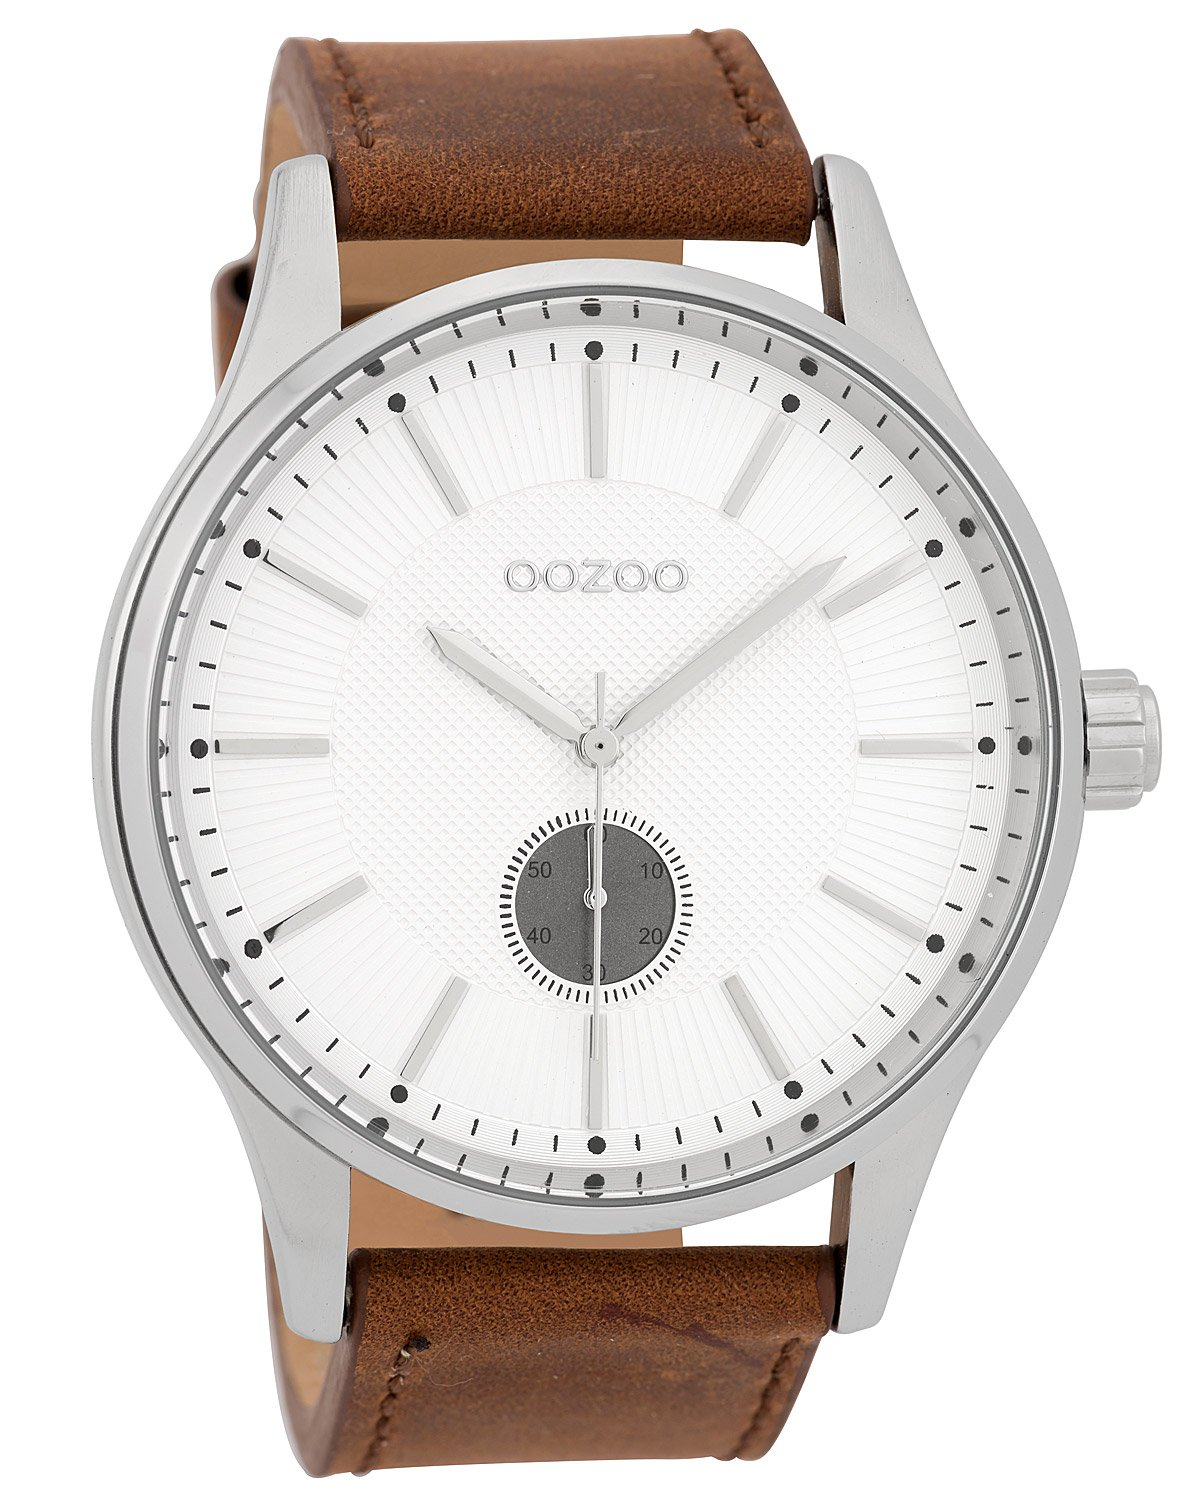 OOZOO Men s Watch Leather Strap White Brown 48 mm C9635 ac610741178